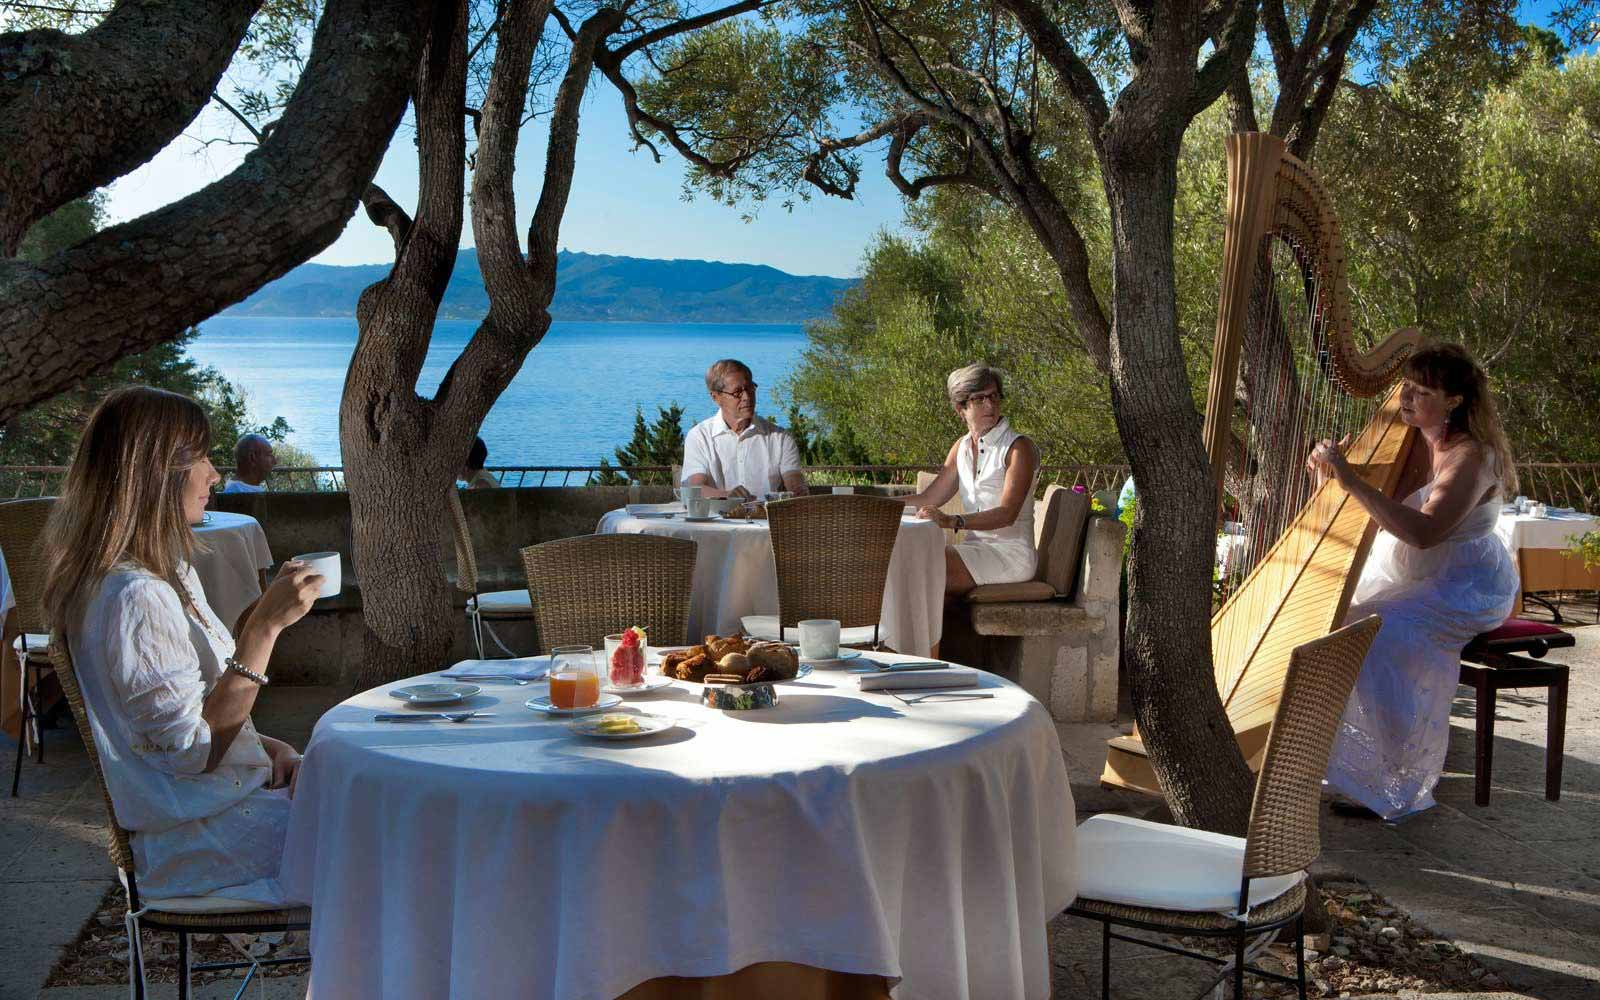 Breakfast at Olivastri at Hotel Capo D'Orso Thalasso & Spa